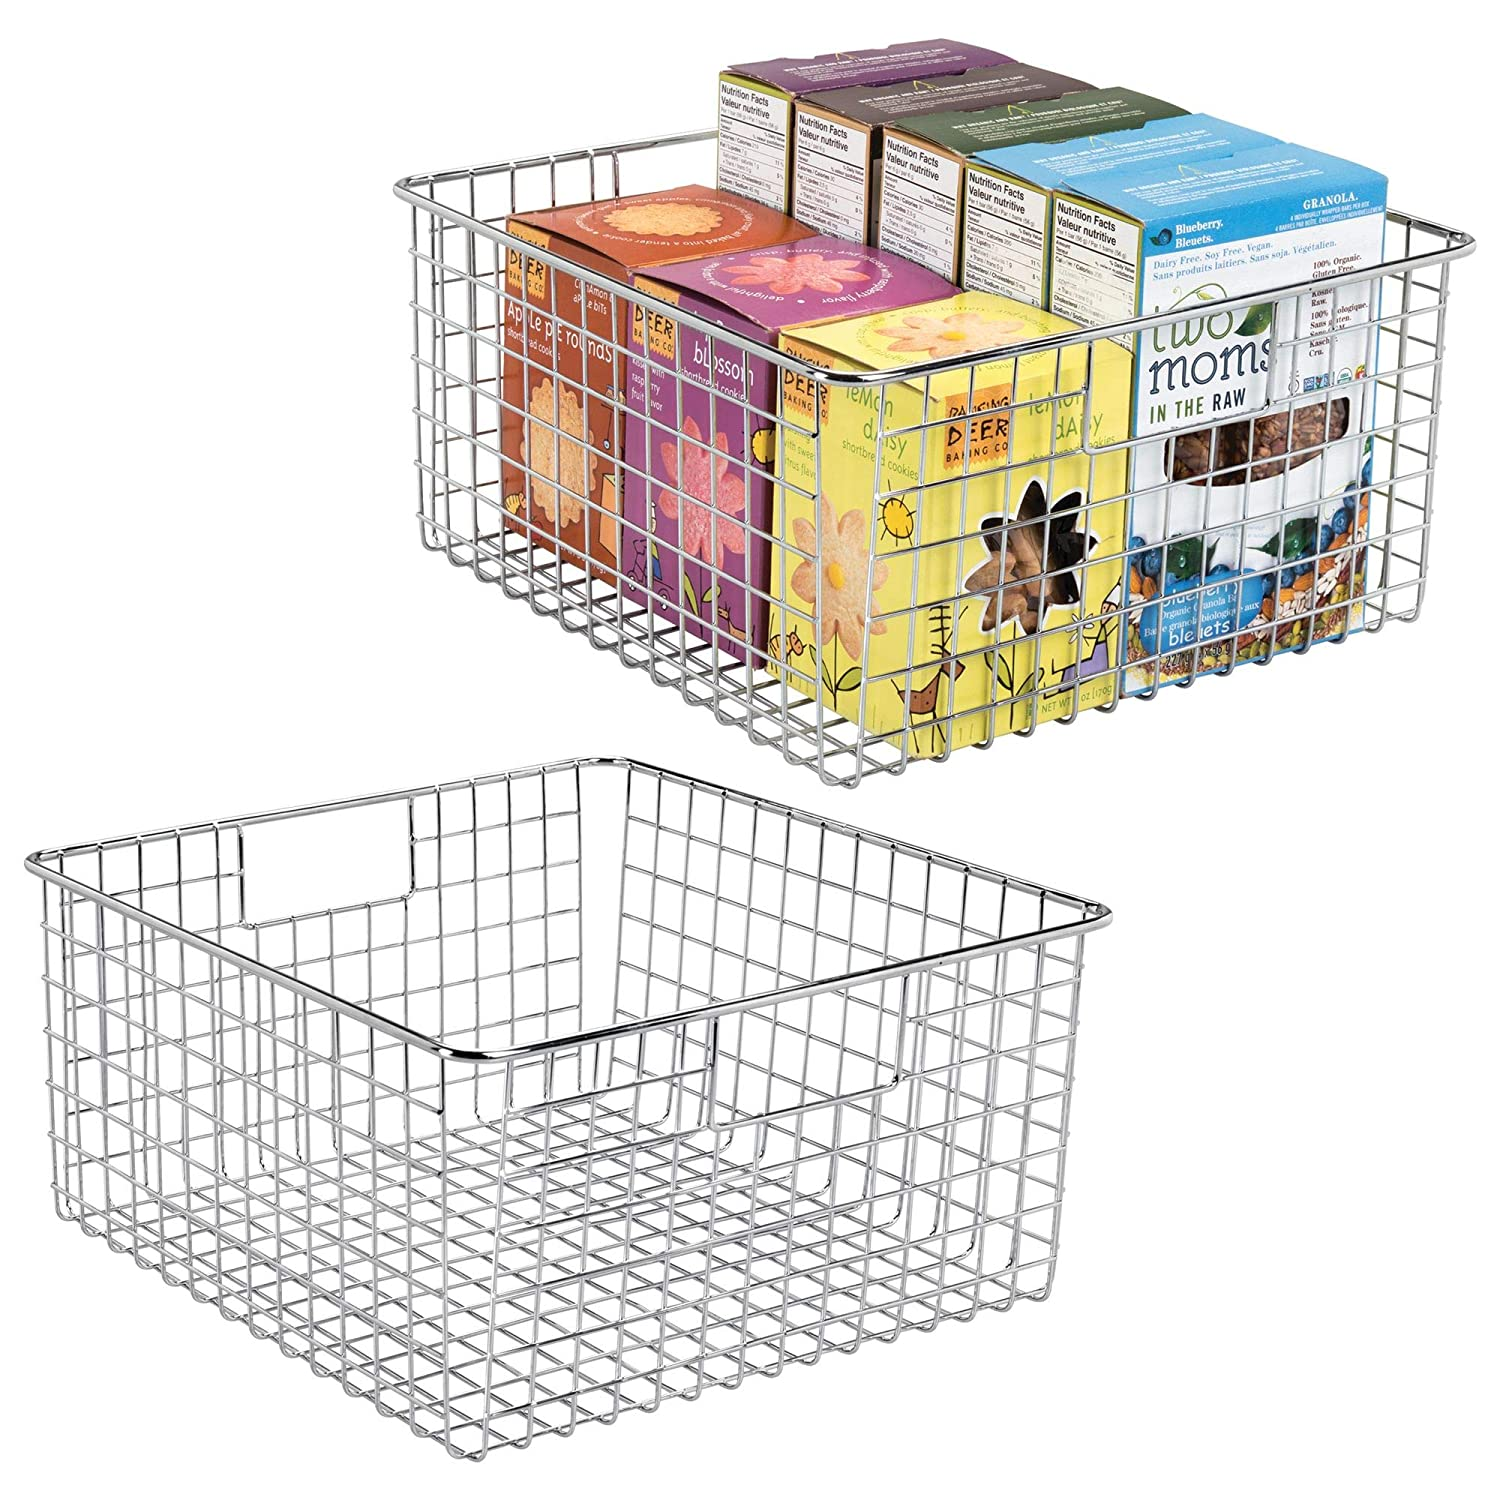 """mDesign Farmhouse Decor Metal Wire Food Storage Organizer, Bin Basket with Handles for Kitchen Cabinets, Pantry, Bathroom, Laundry Room, Closets, Garage - 12"""" x 12"""" x 6"""" - 2 Pack - Chrome"""